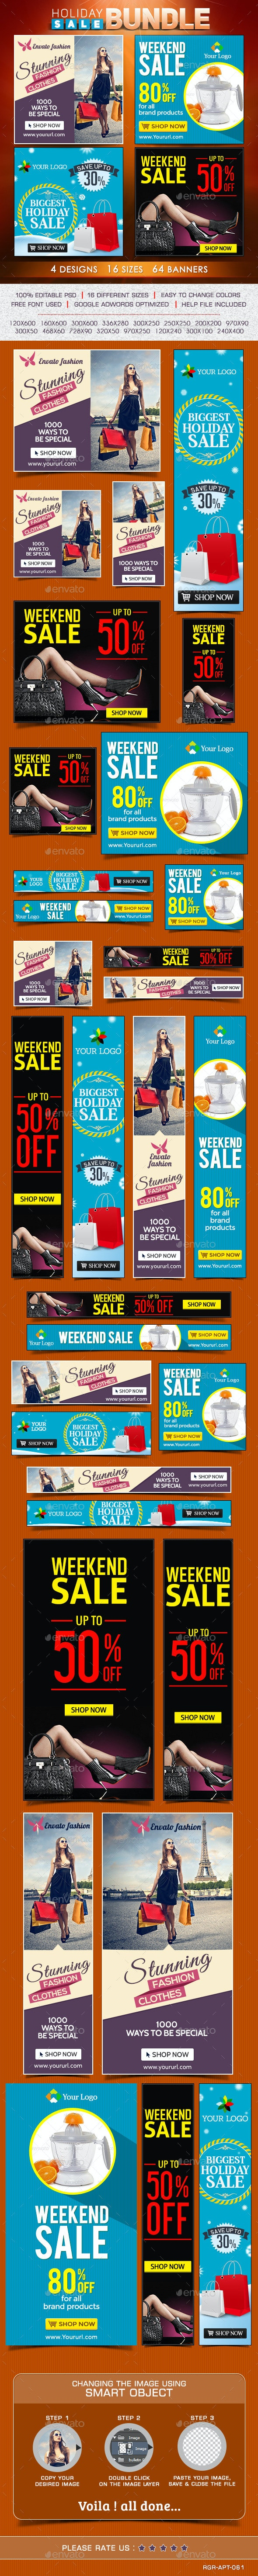 Special Sale Banner Bundle - 4 Sets - Banners & Ads Web Elements